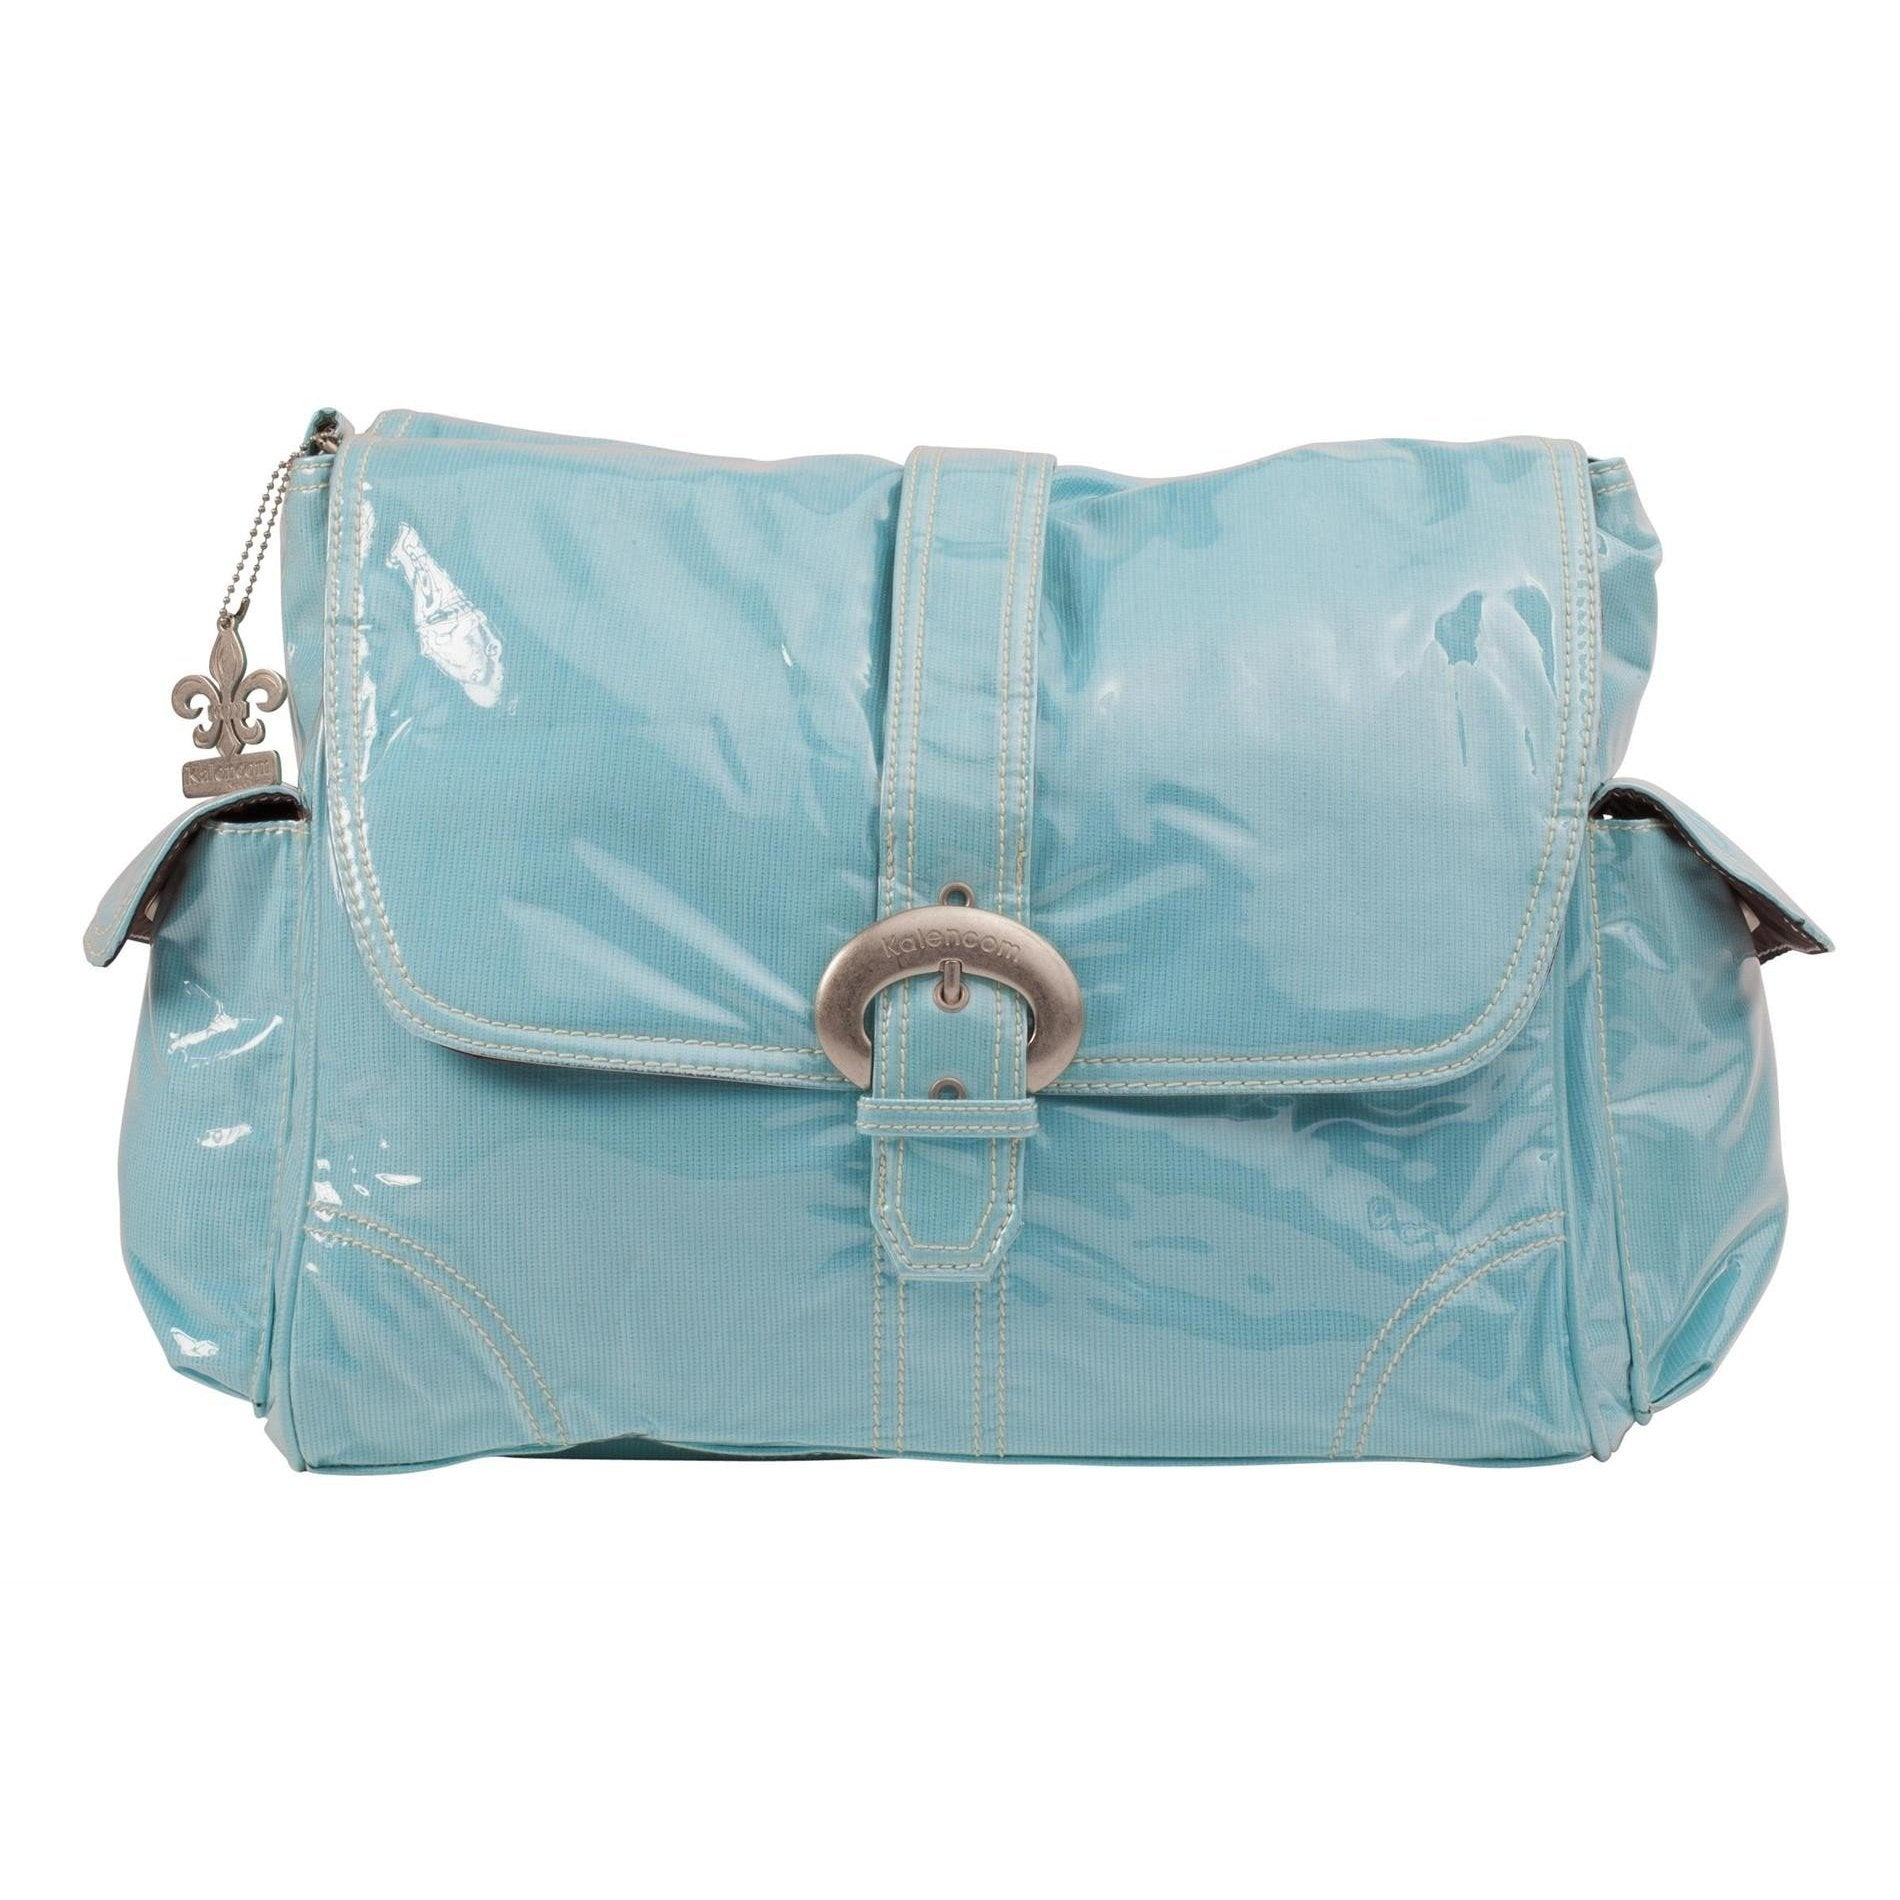 Baby Blue Corduroy Laminated Buckle Diaper Bag | Style 2960 - Kalencom-Diaper Bags-Jack and Jill Boutique